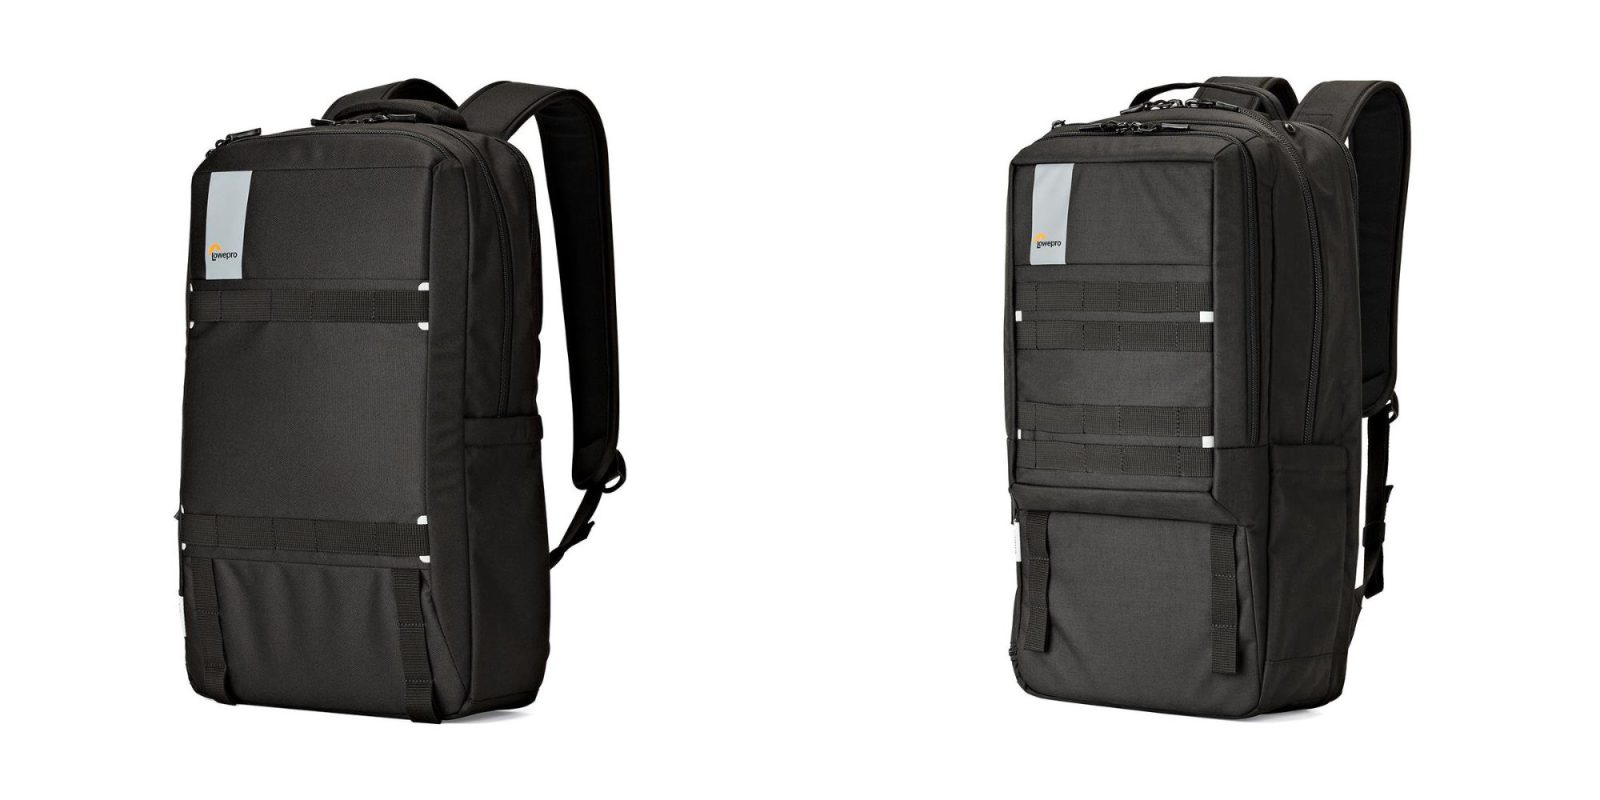 Lowepro's Urbex 20L Backpack fits a 15-inch MacBook & iPad at $30 (Save 70%), more